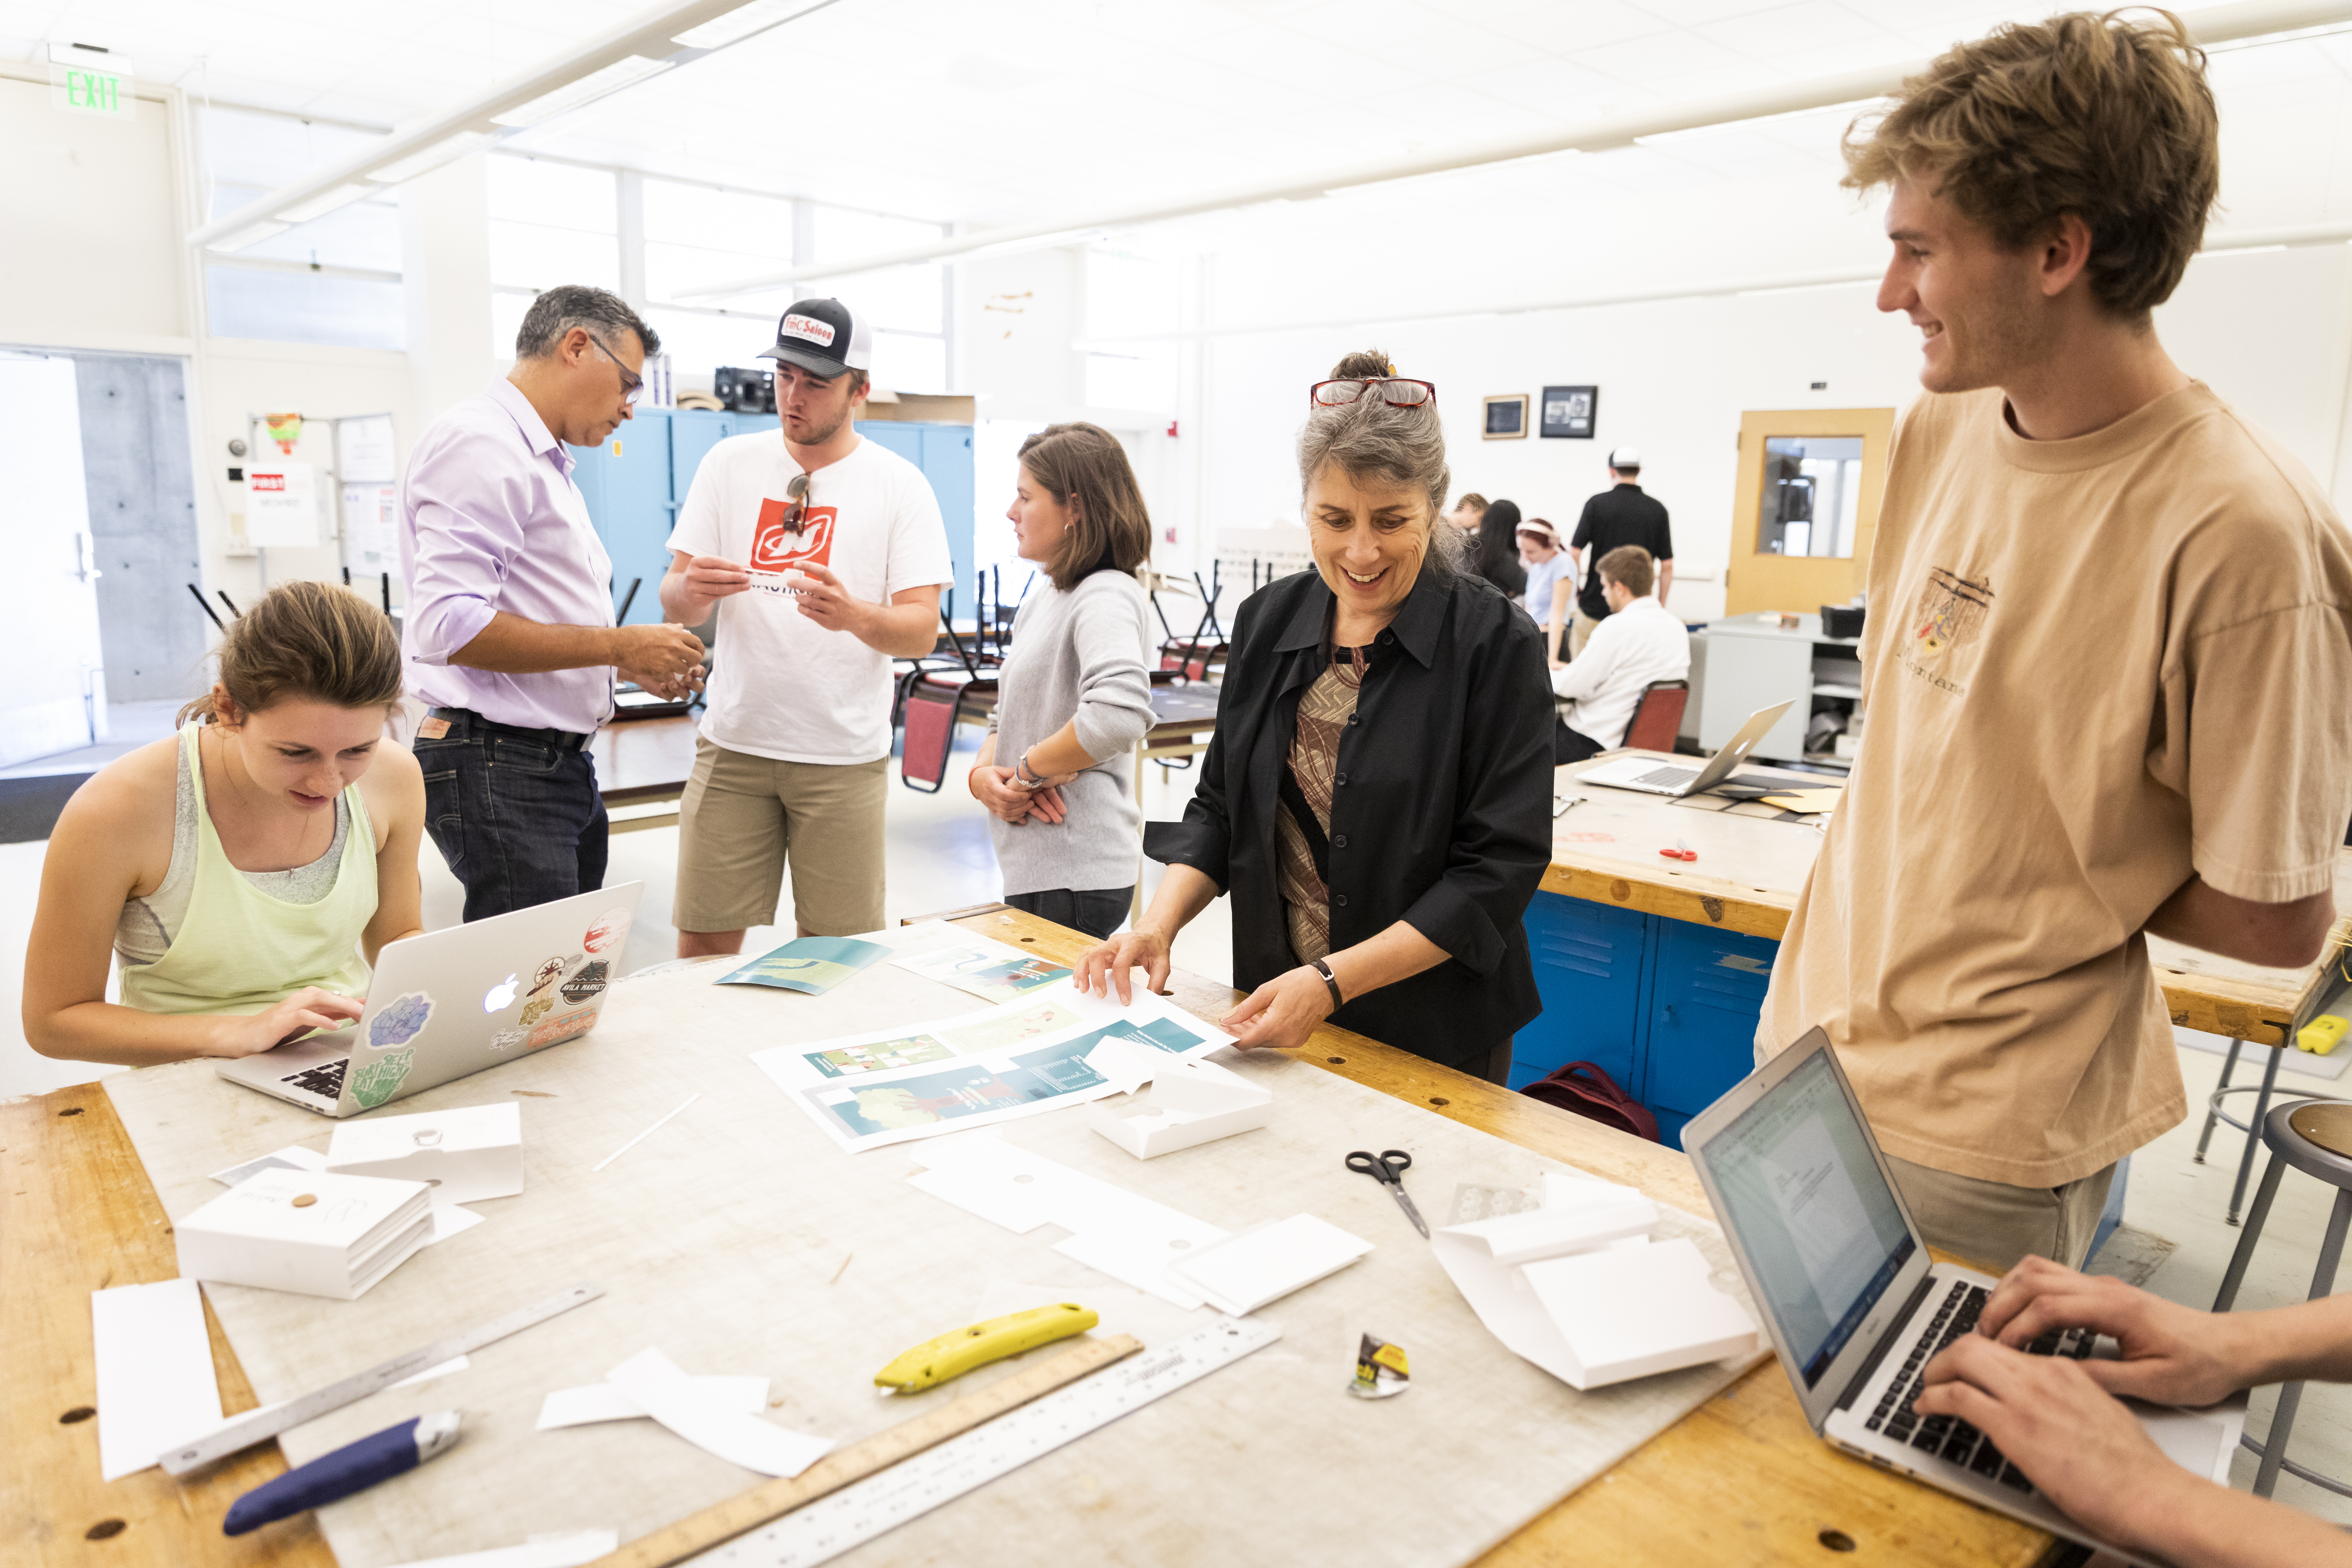 Professors Javier de la Fuente and Mary LaPorte work with packaging design students